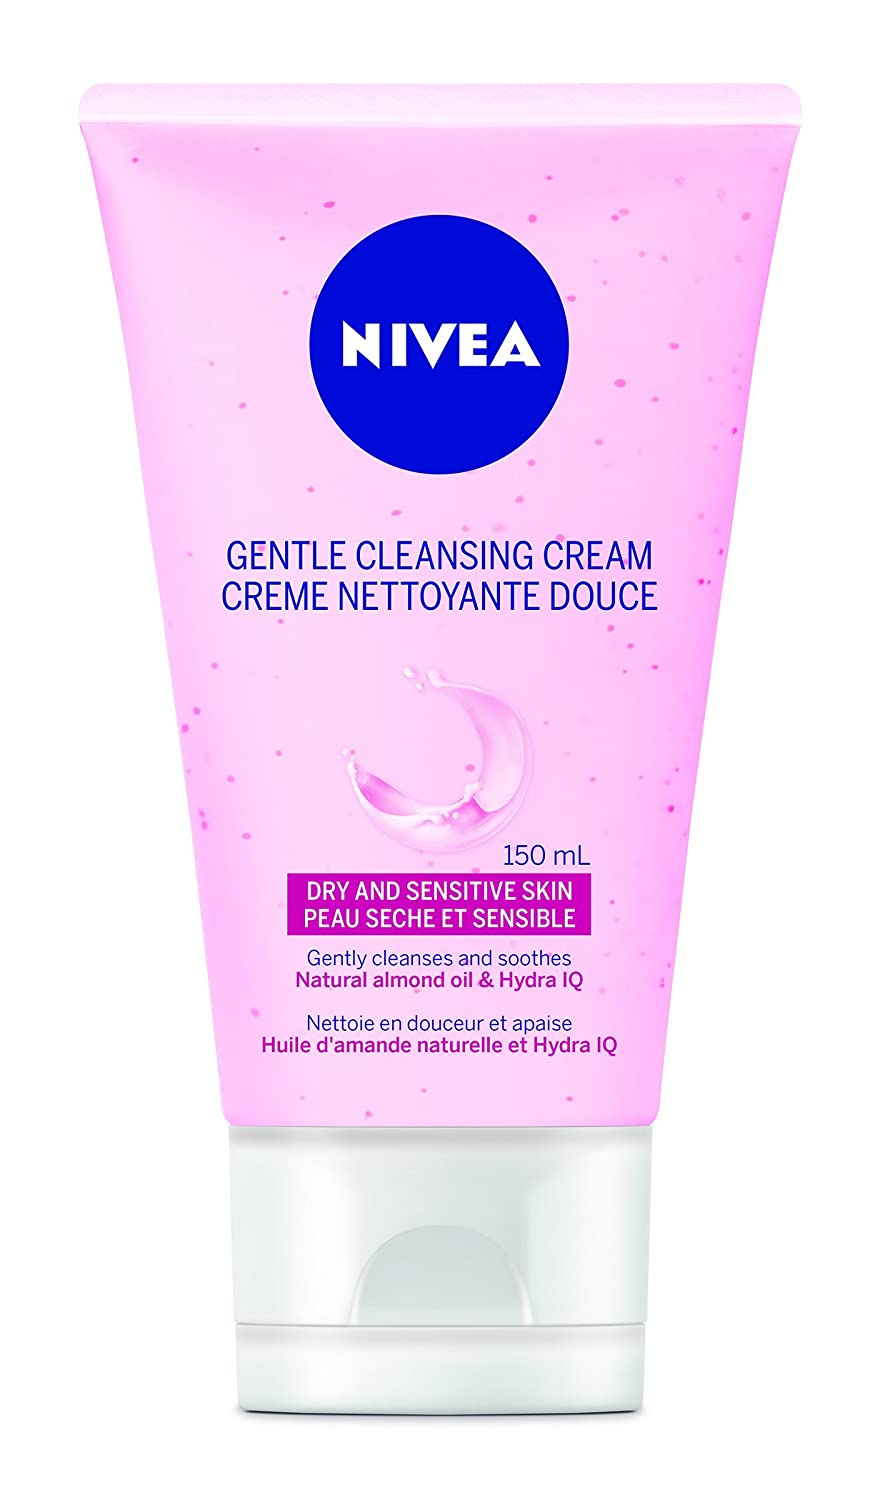 NIVEA Gentle Facial Cleansing Cream for Dry and Sensitive Skin, 150mL 056594004658